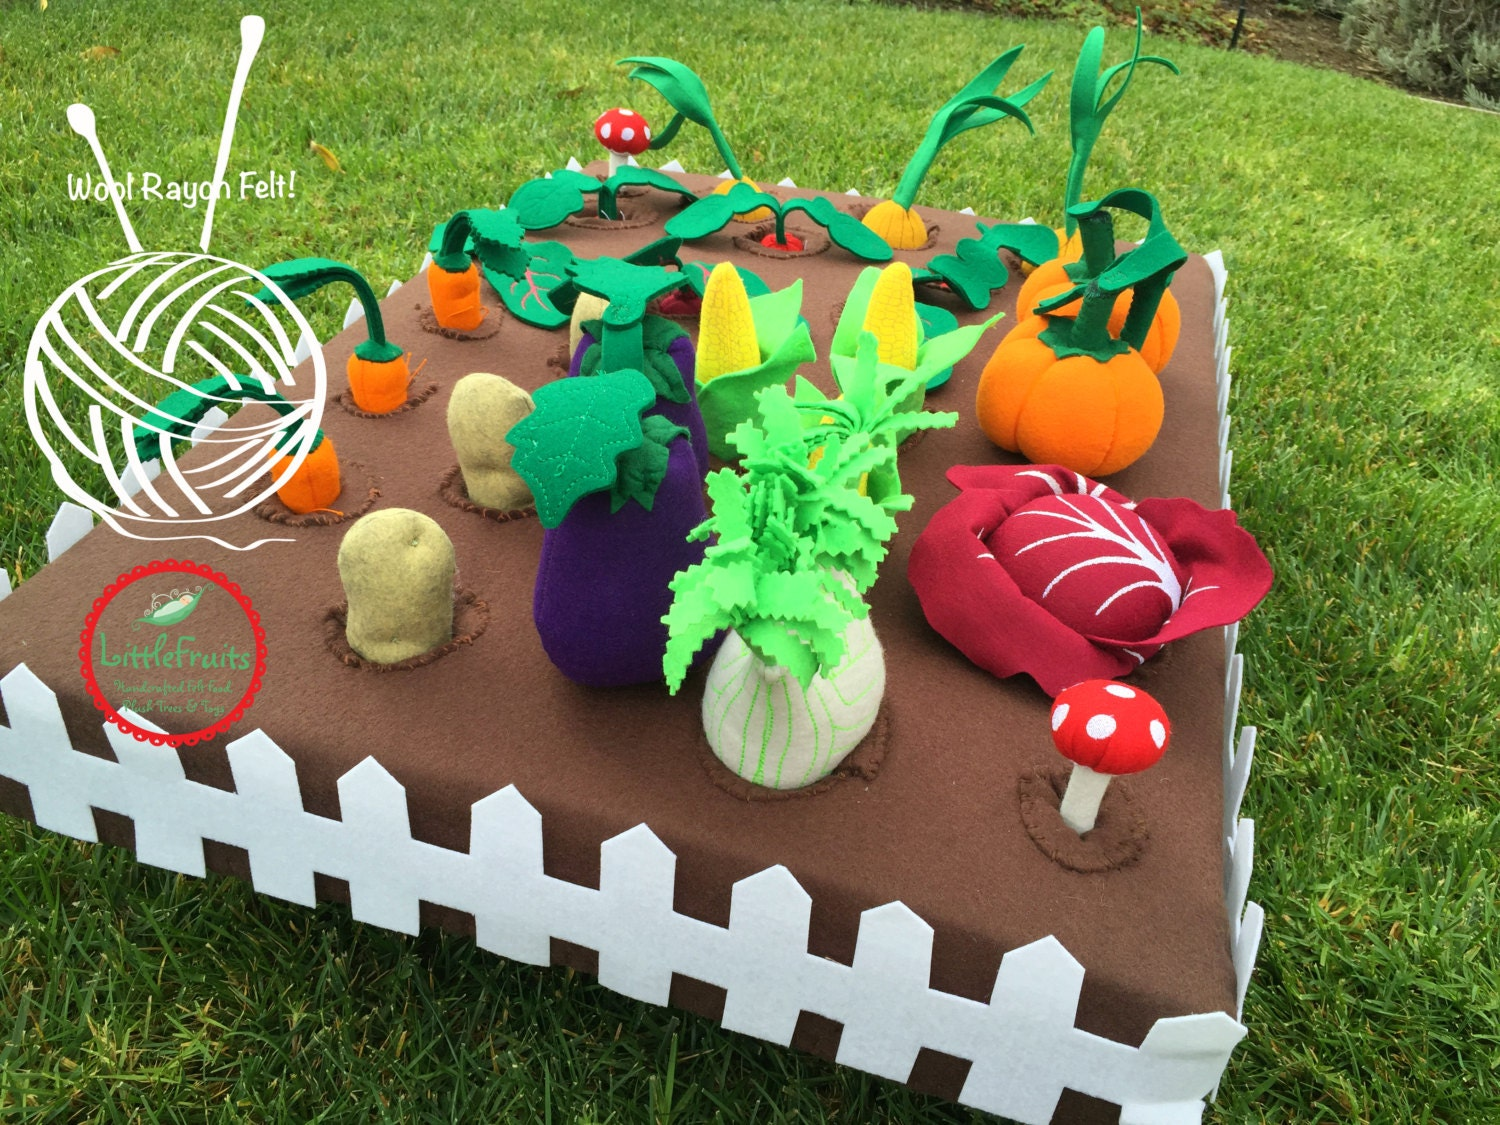 Vegetable garden pictures for kids - Like This Item